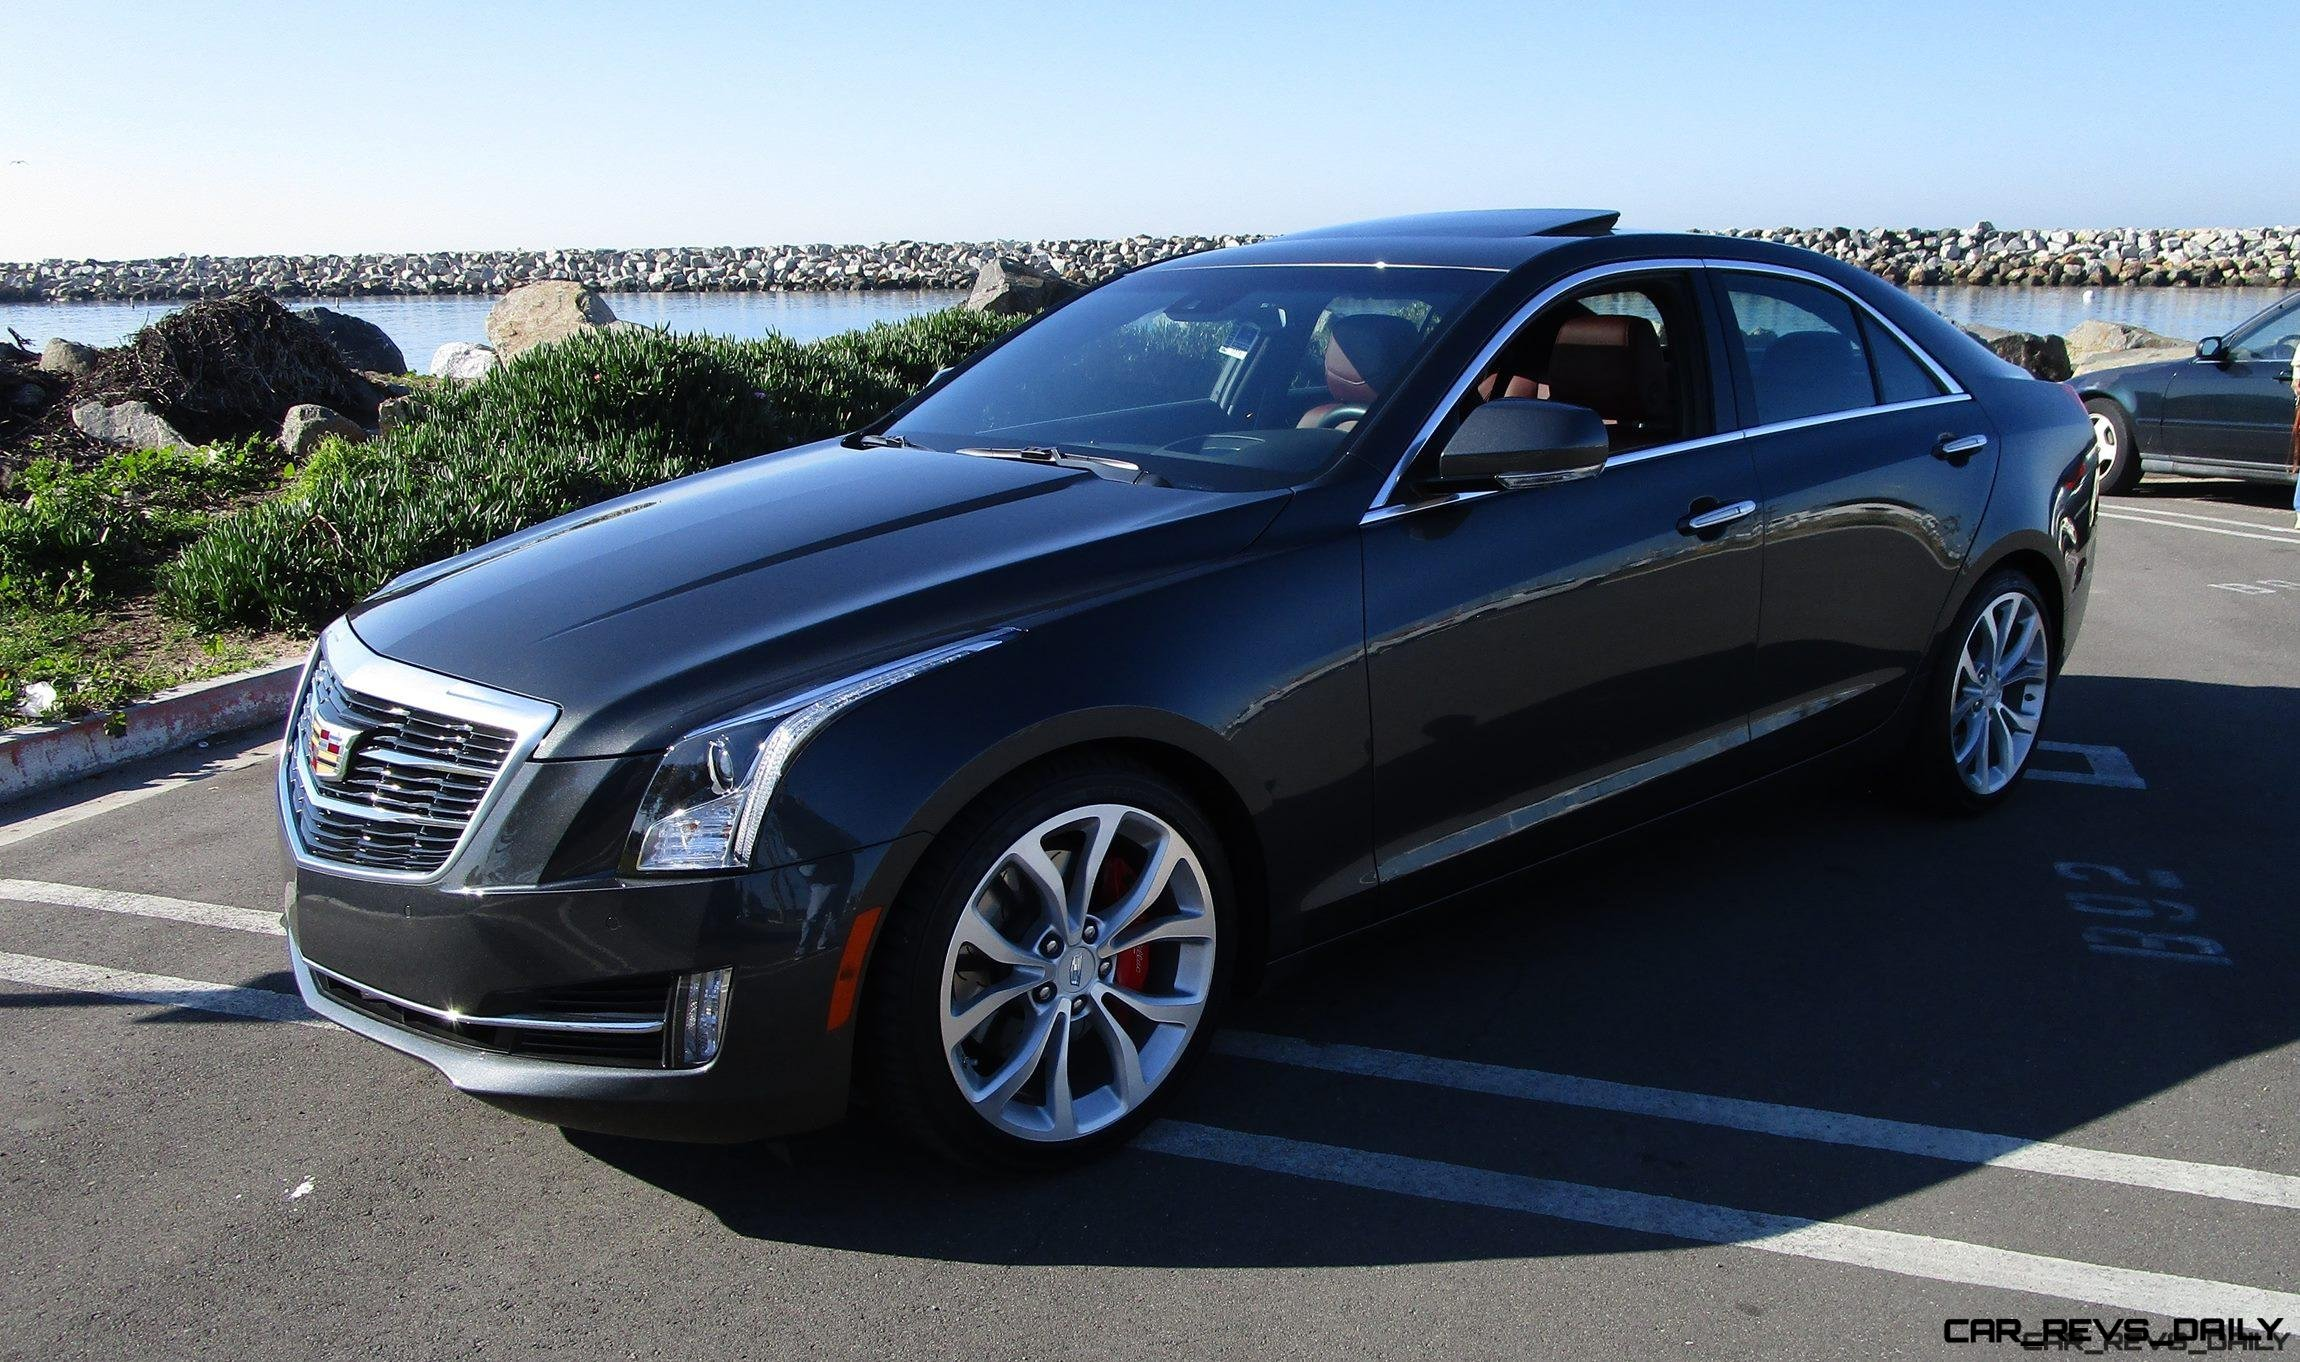 2017 Cadillac Ats 3.6 L Premium Performance >> 2017 Cadillac ATS 3.6 Performance - Road Test Review - By